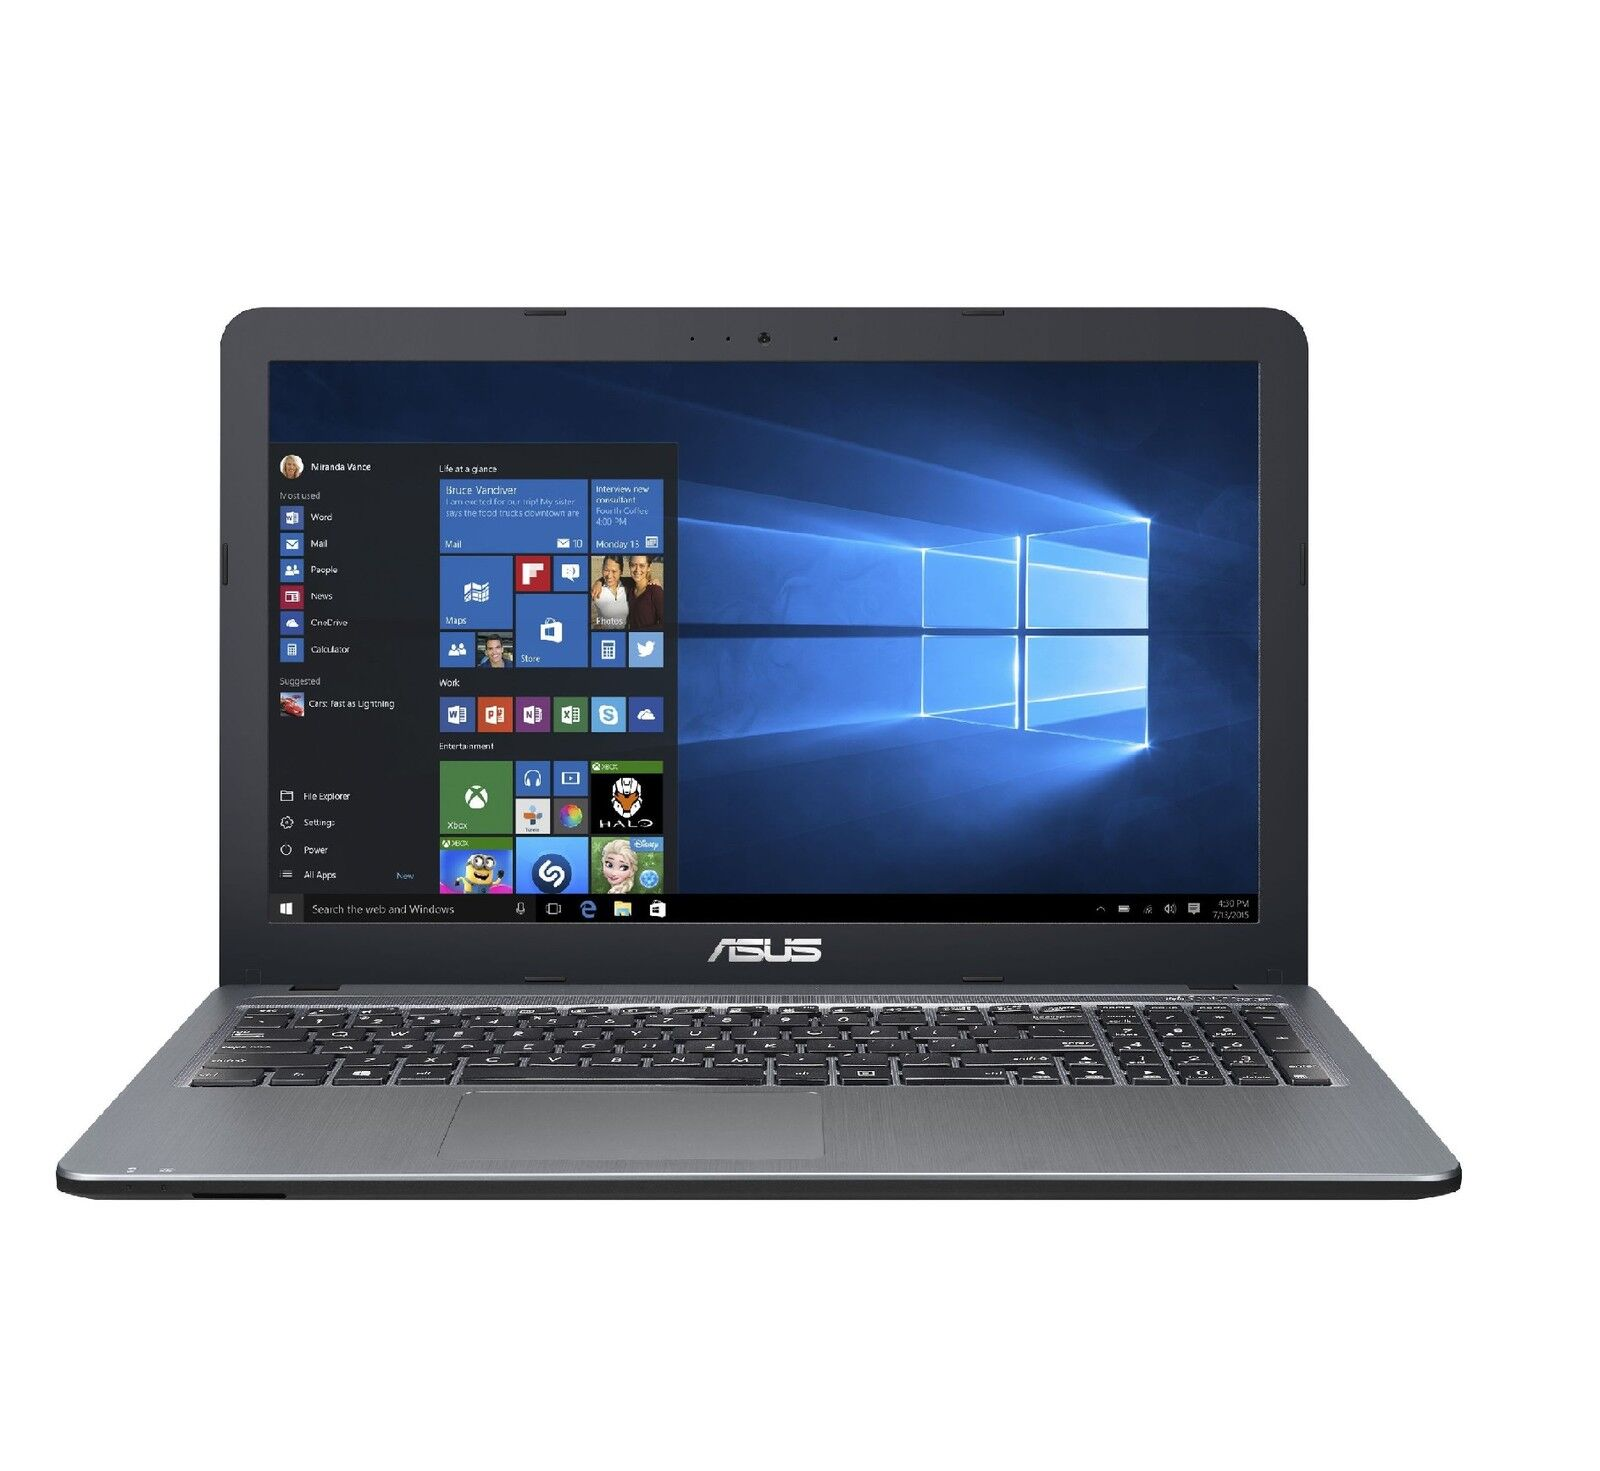 Asus Notebook 15,6 Zoll - Intel Core 2,48 GHz - 500 GB - USB 3.1 Windows 10 Pro